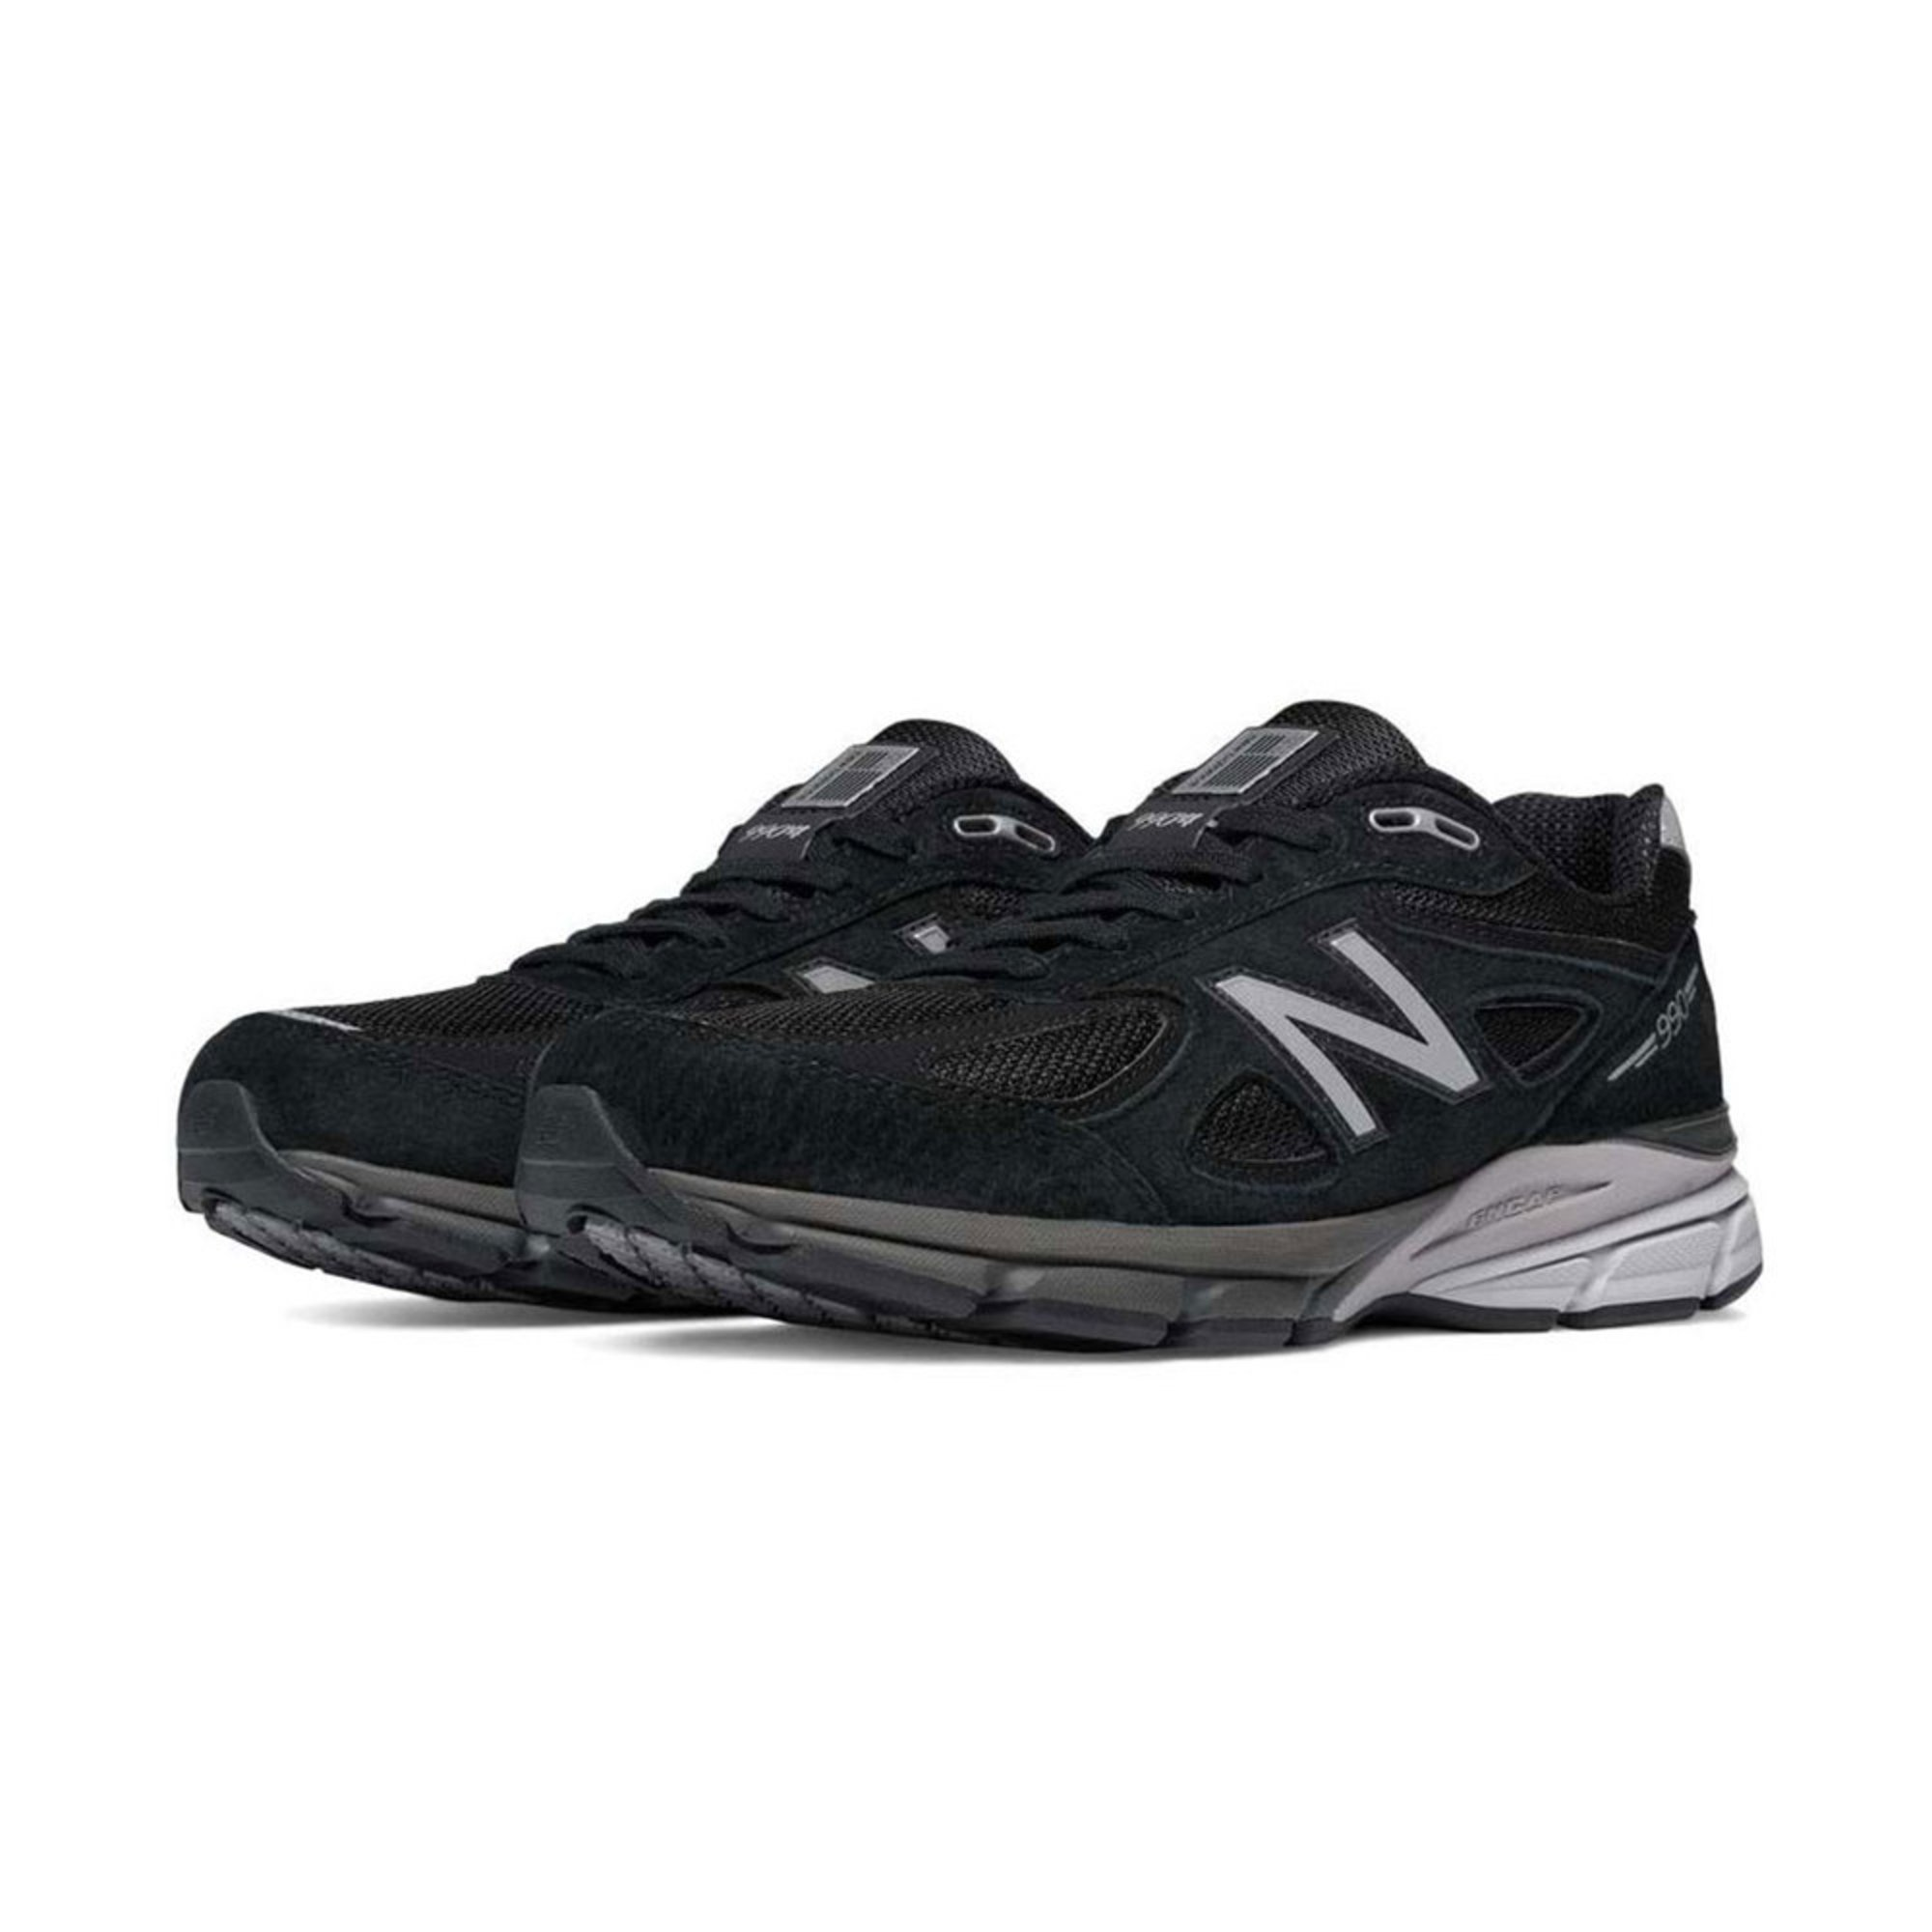 online retailer 1d2c3 259d8 New Balance Men s 990v4 Running Shoe   Men s Running Shoes   Shoes ...